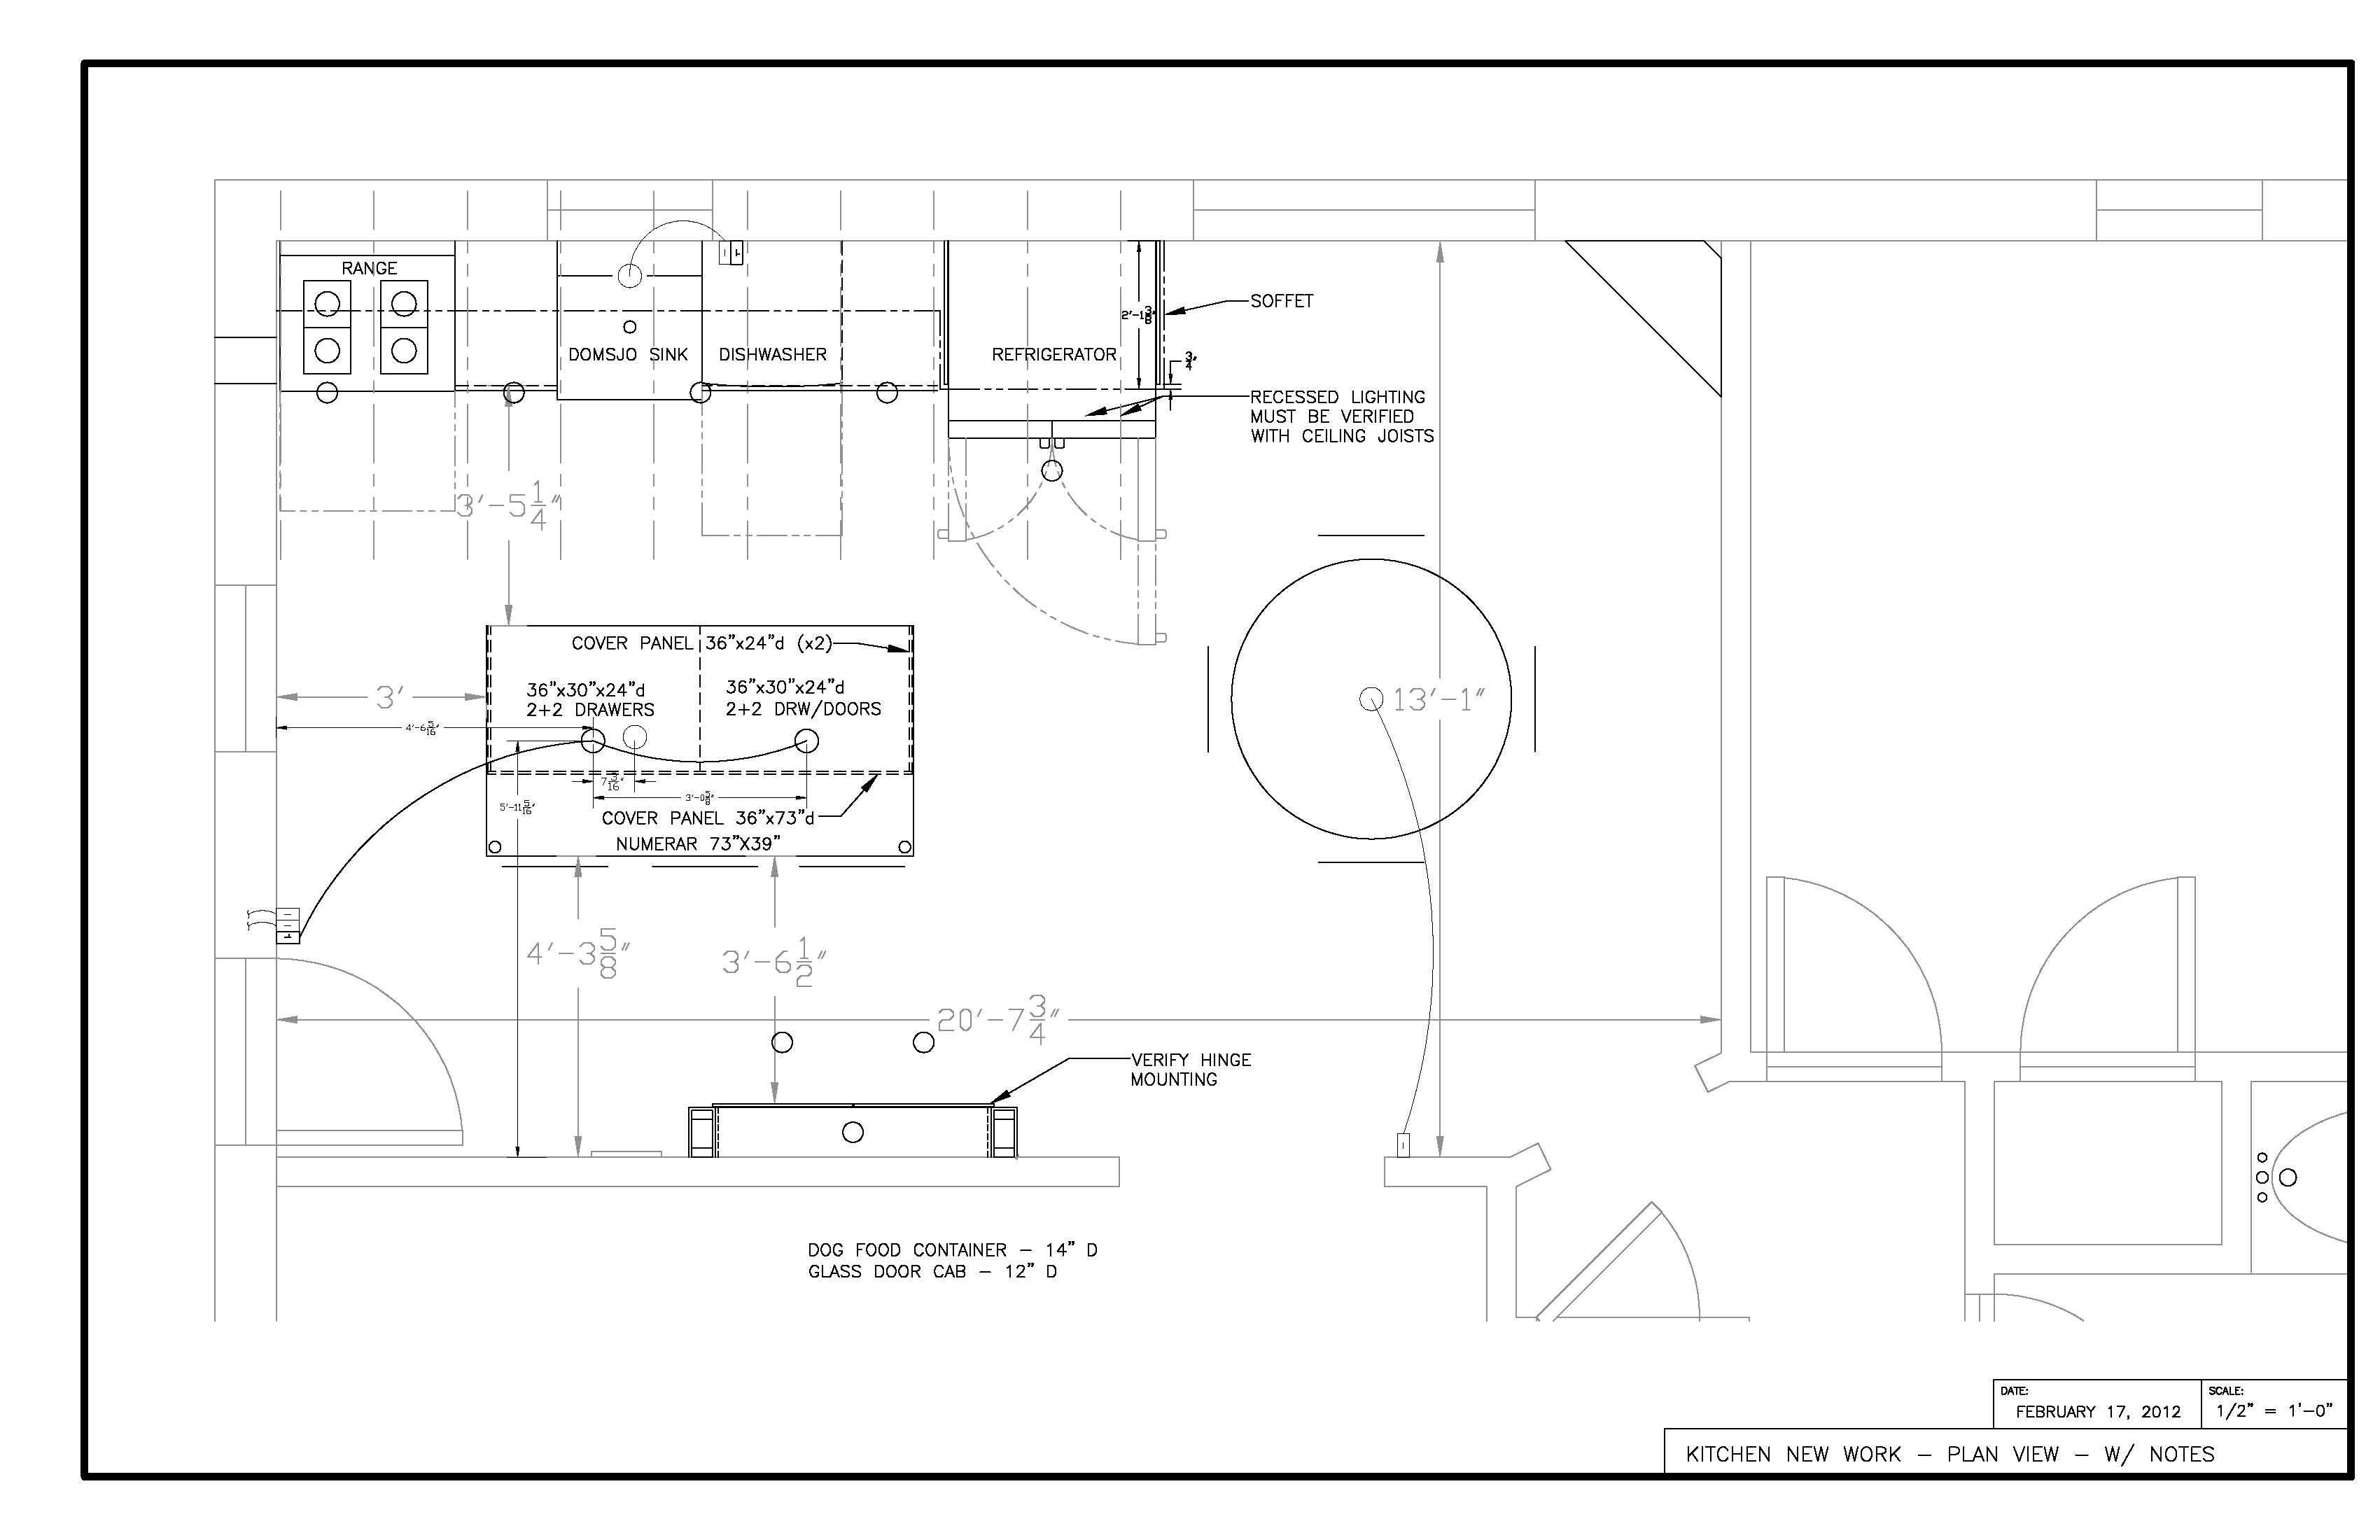 Kitchen Plan View - Current working drawing w/ electrical